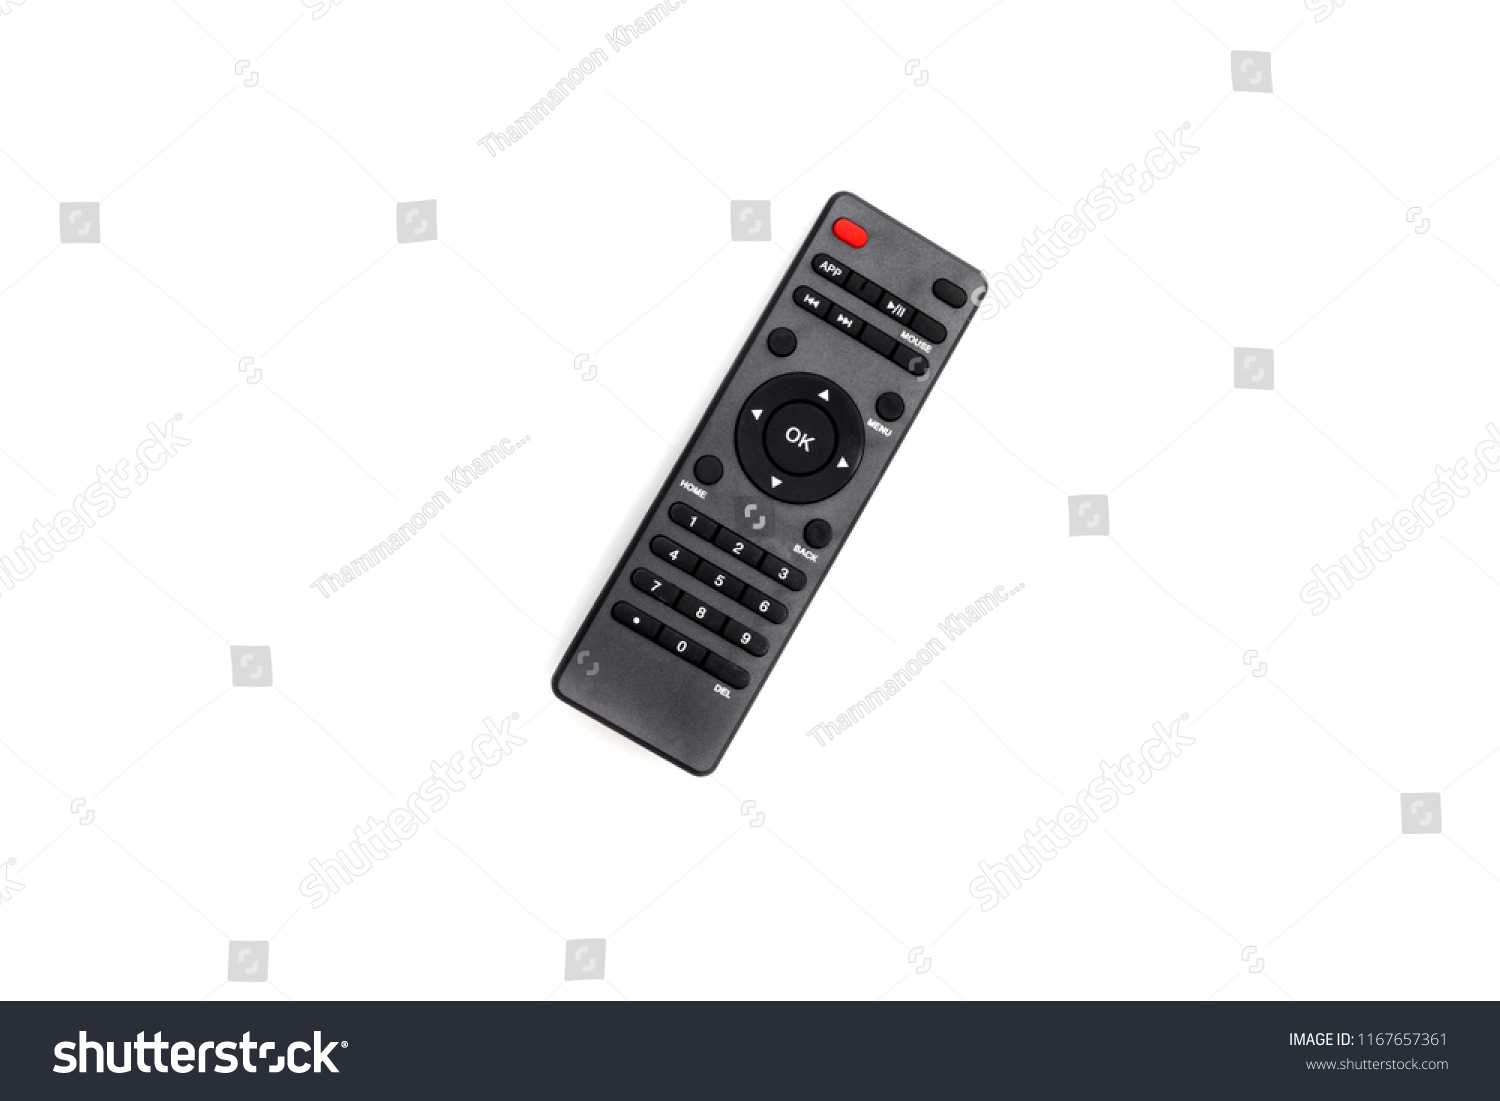 Infrared Remote Control Tv Satellite Receiver Stock Photo Edit Now For Isolated On White Backgrounda Is